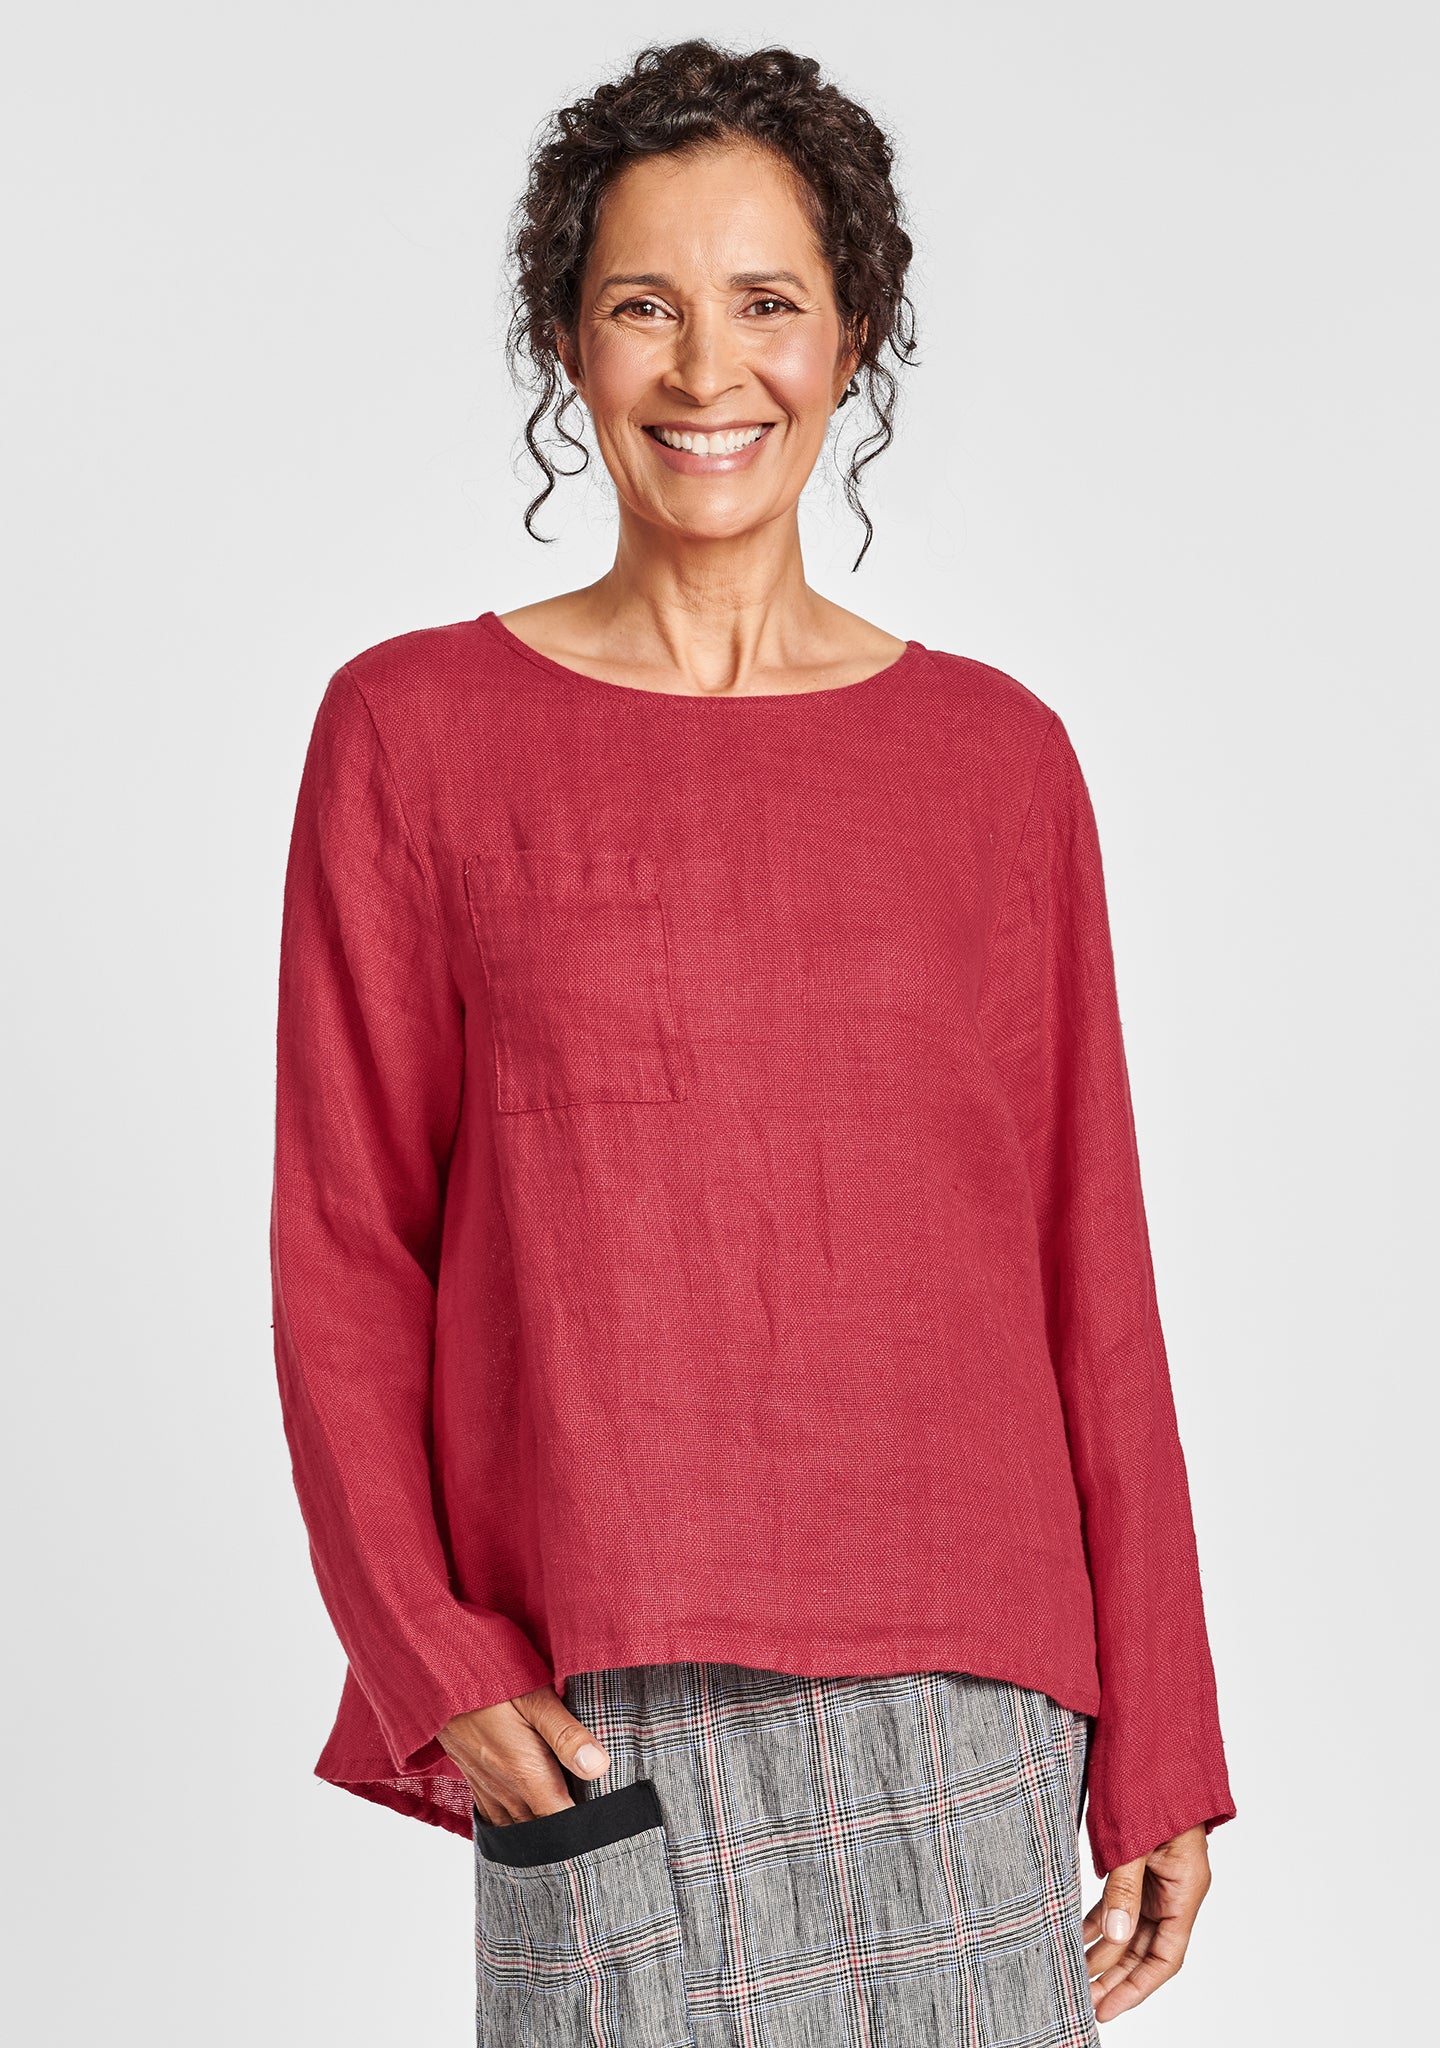 tell tail top linen shirt red